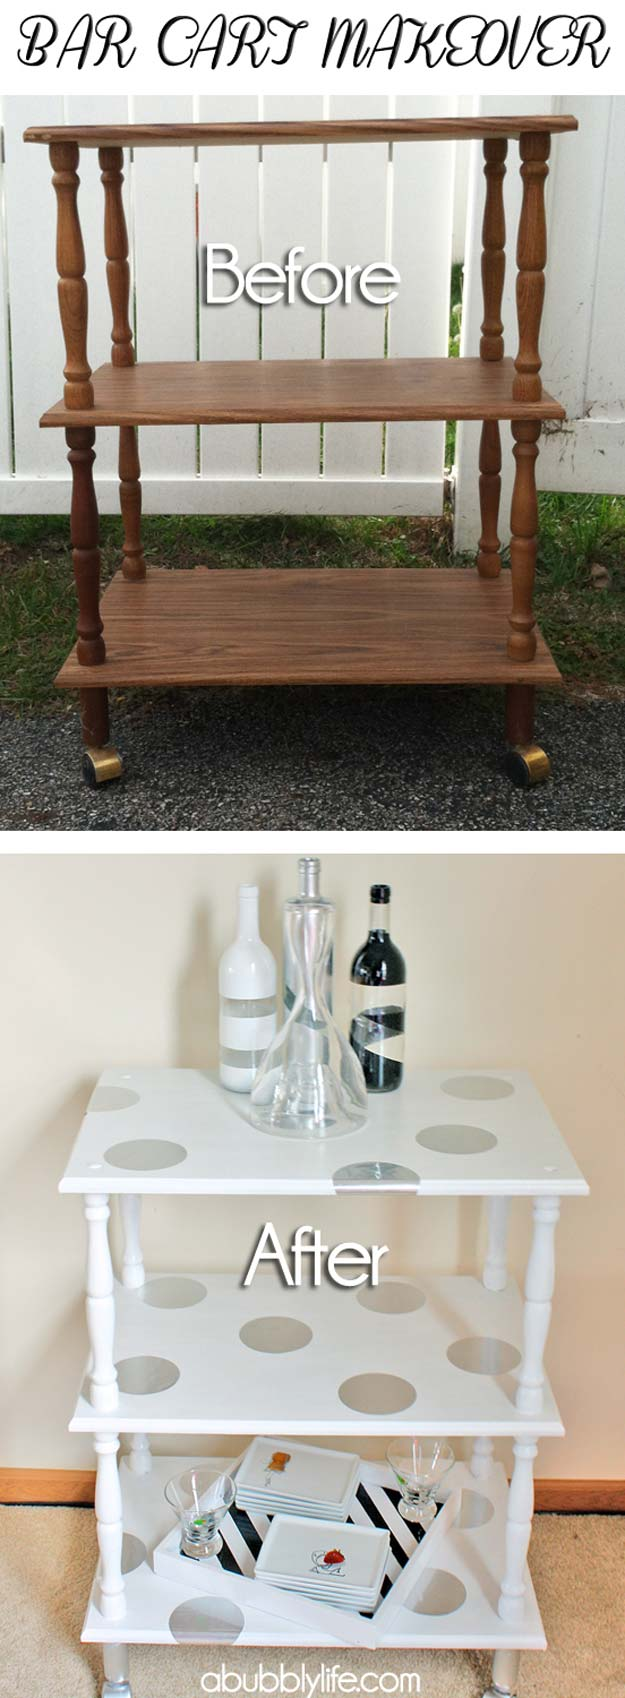 DIY Polka Dot Crafts and Projects - DIY Polka Dotted Bar Cart - Cool Clothes, Room and Home Decor, Wall Art, Mason Jars and Party Ideas, Canvas, Fabric and Paint Project Tutorials - Fun Craft Ideas for Teens, Kids and Adults Make Awesome DIY Gifts